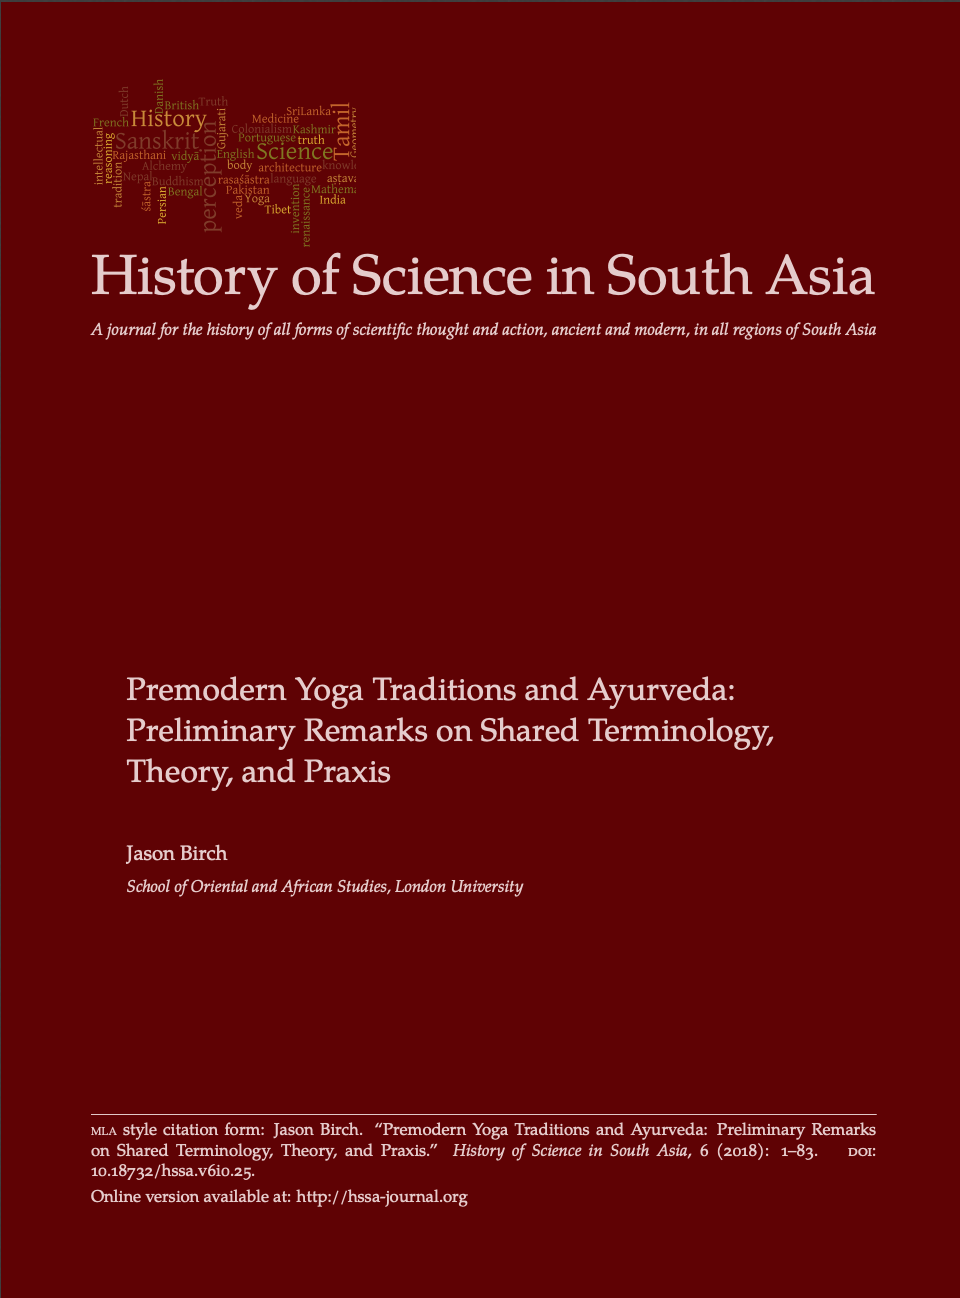 Premodern Yoga Traditions and Ayurveda: Preliminary Remarks on Shared Terminology, Theory and Praxis.